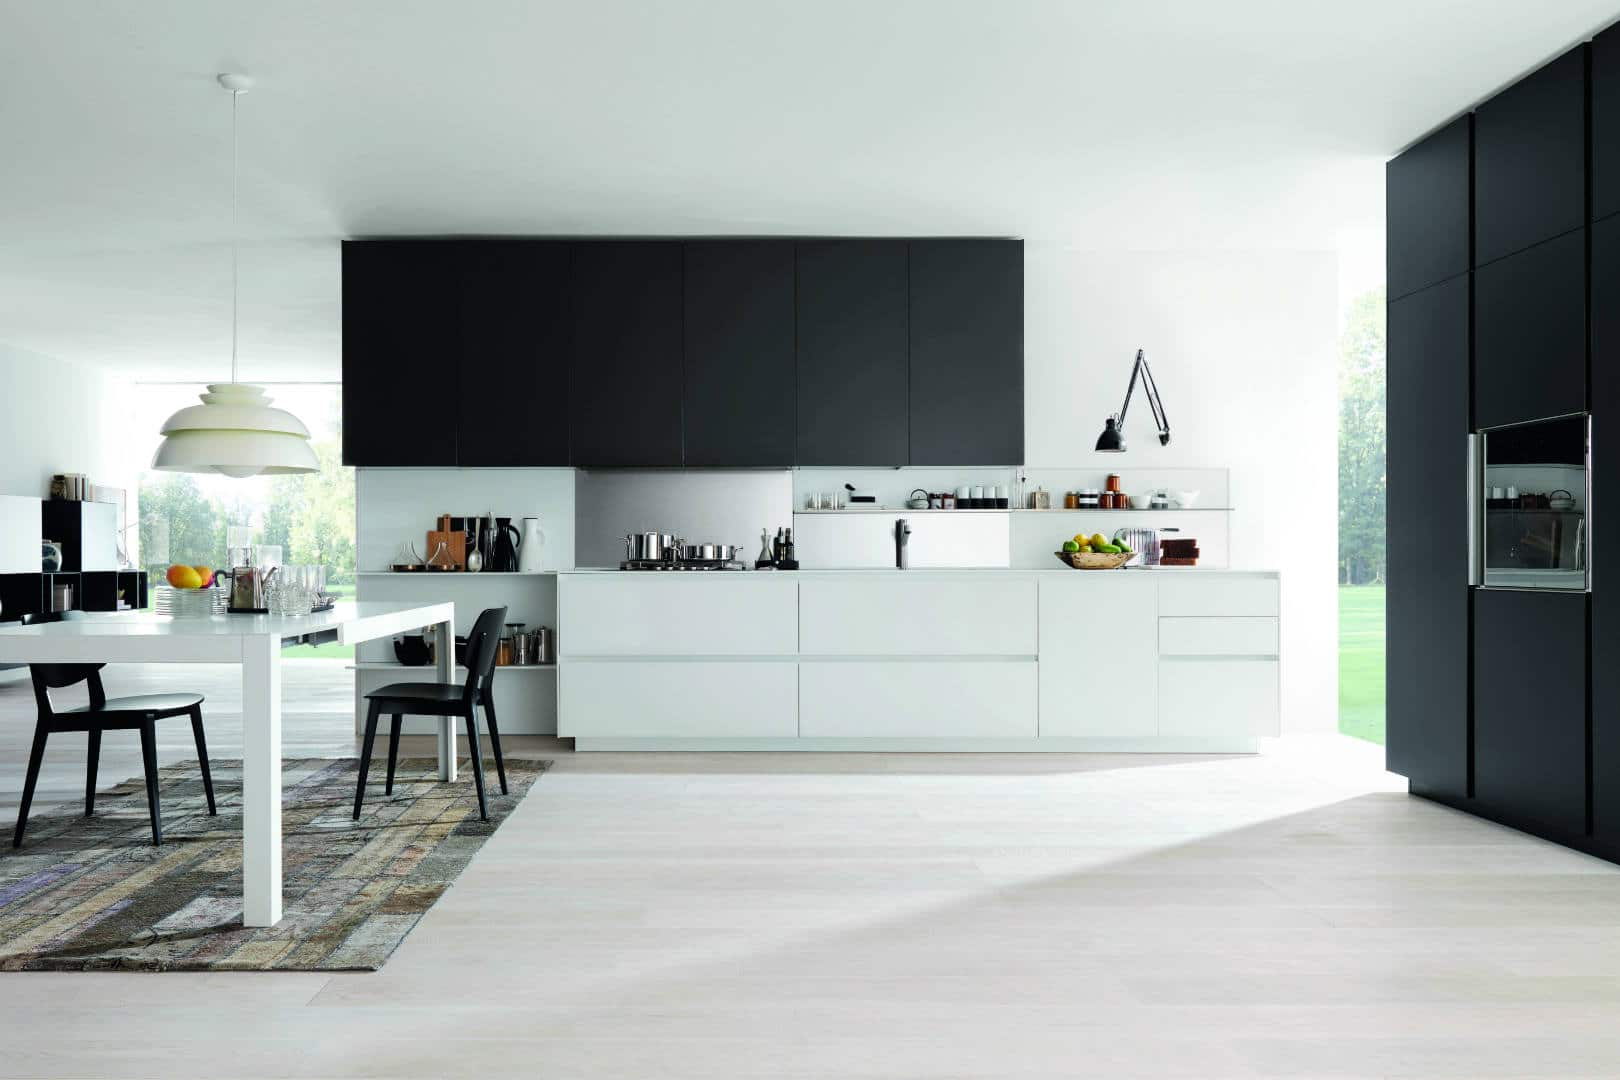 antis kitchen furniture euromobil design euromobil. delighful furniture and antis kitchen furniture euromobil design